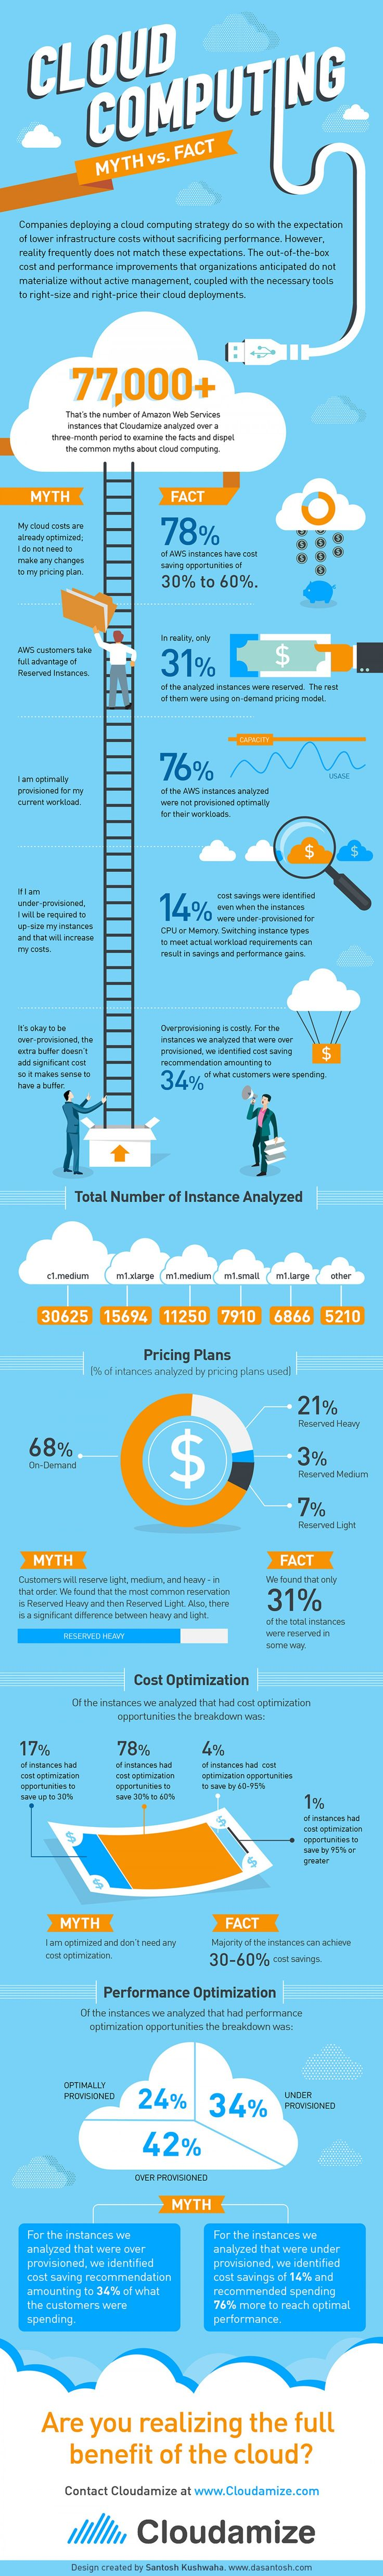 www.hostedgroupwise.com operate by a Novell CNE Expert- Mostly a Secure and  Reliable Hosting company in your affordable solution. http://netactivityus.tumblr.com/post/149355275634/benefits-of-moving-to-the-cloud-with